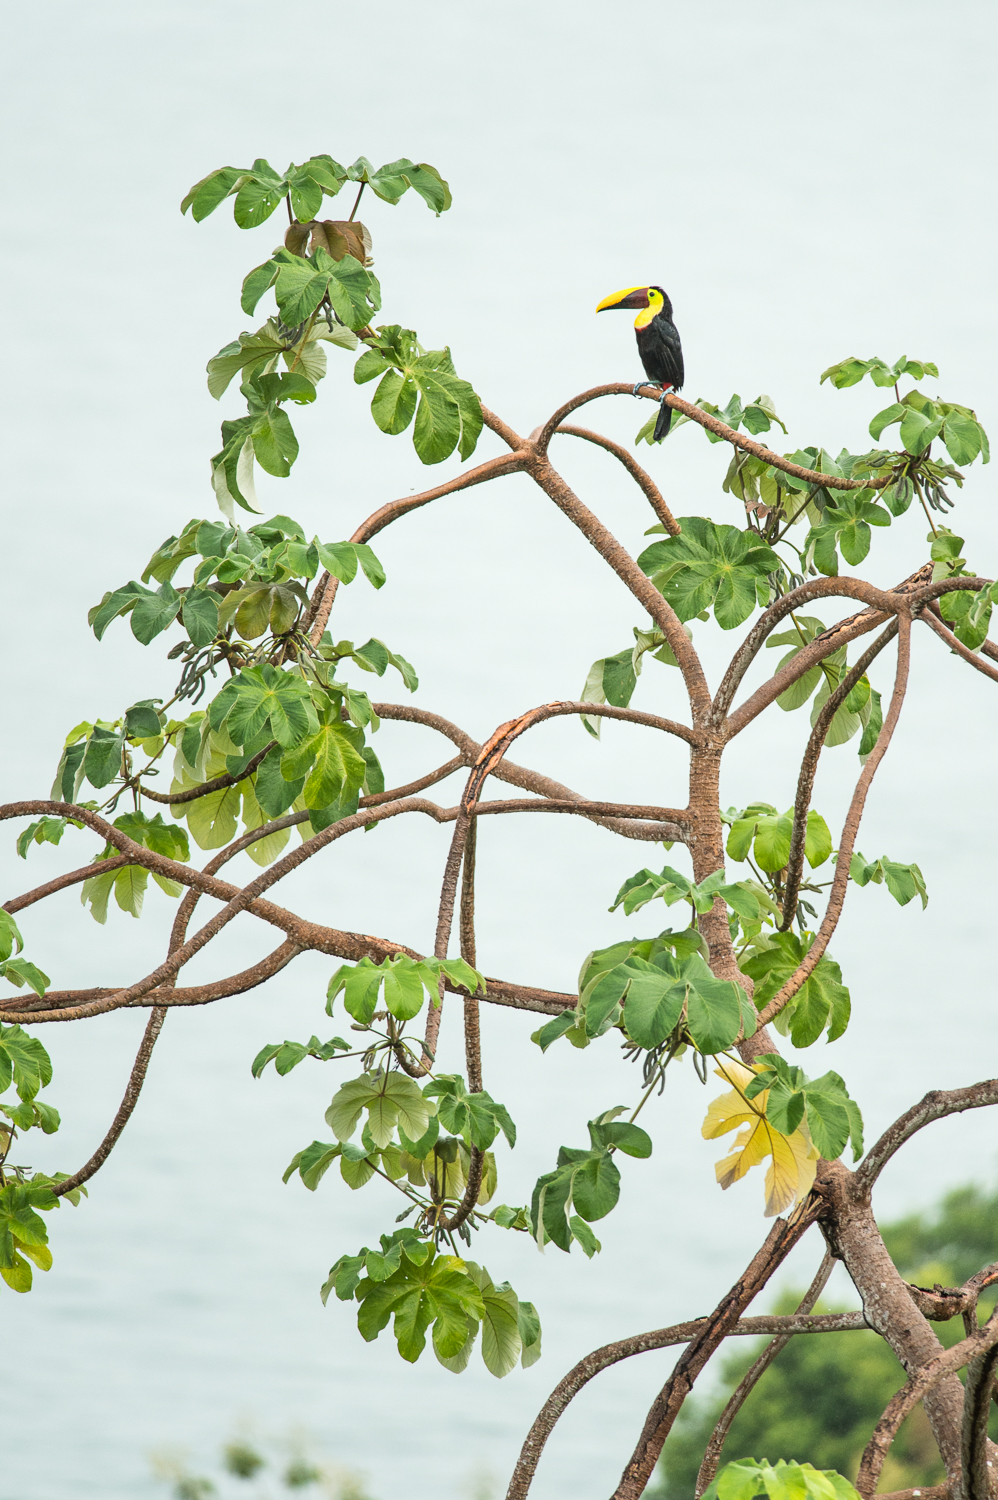 chesnut-mandibled-toucan-costa-rica-3495.jpg